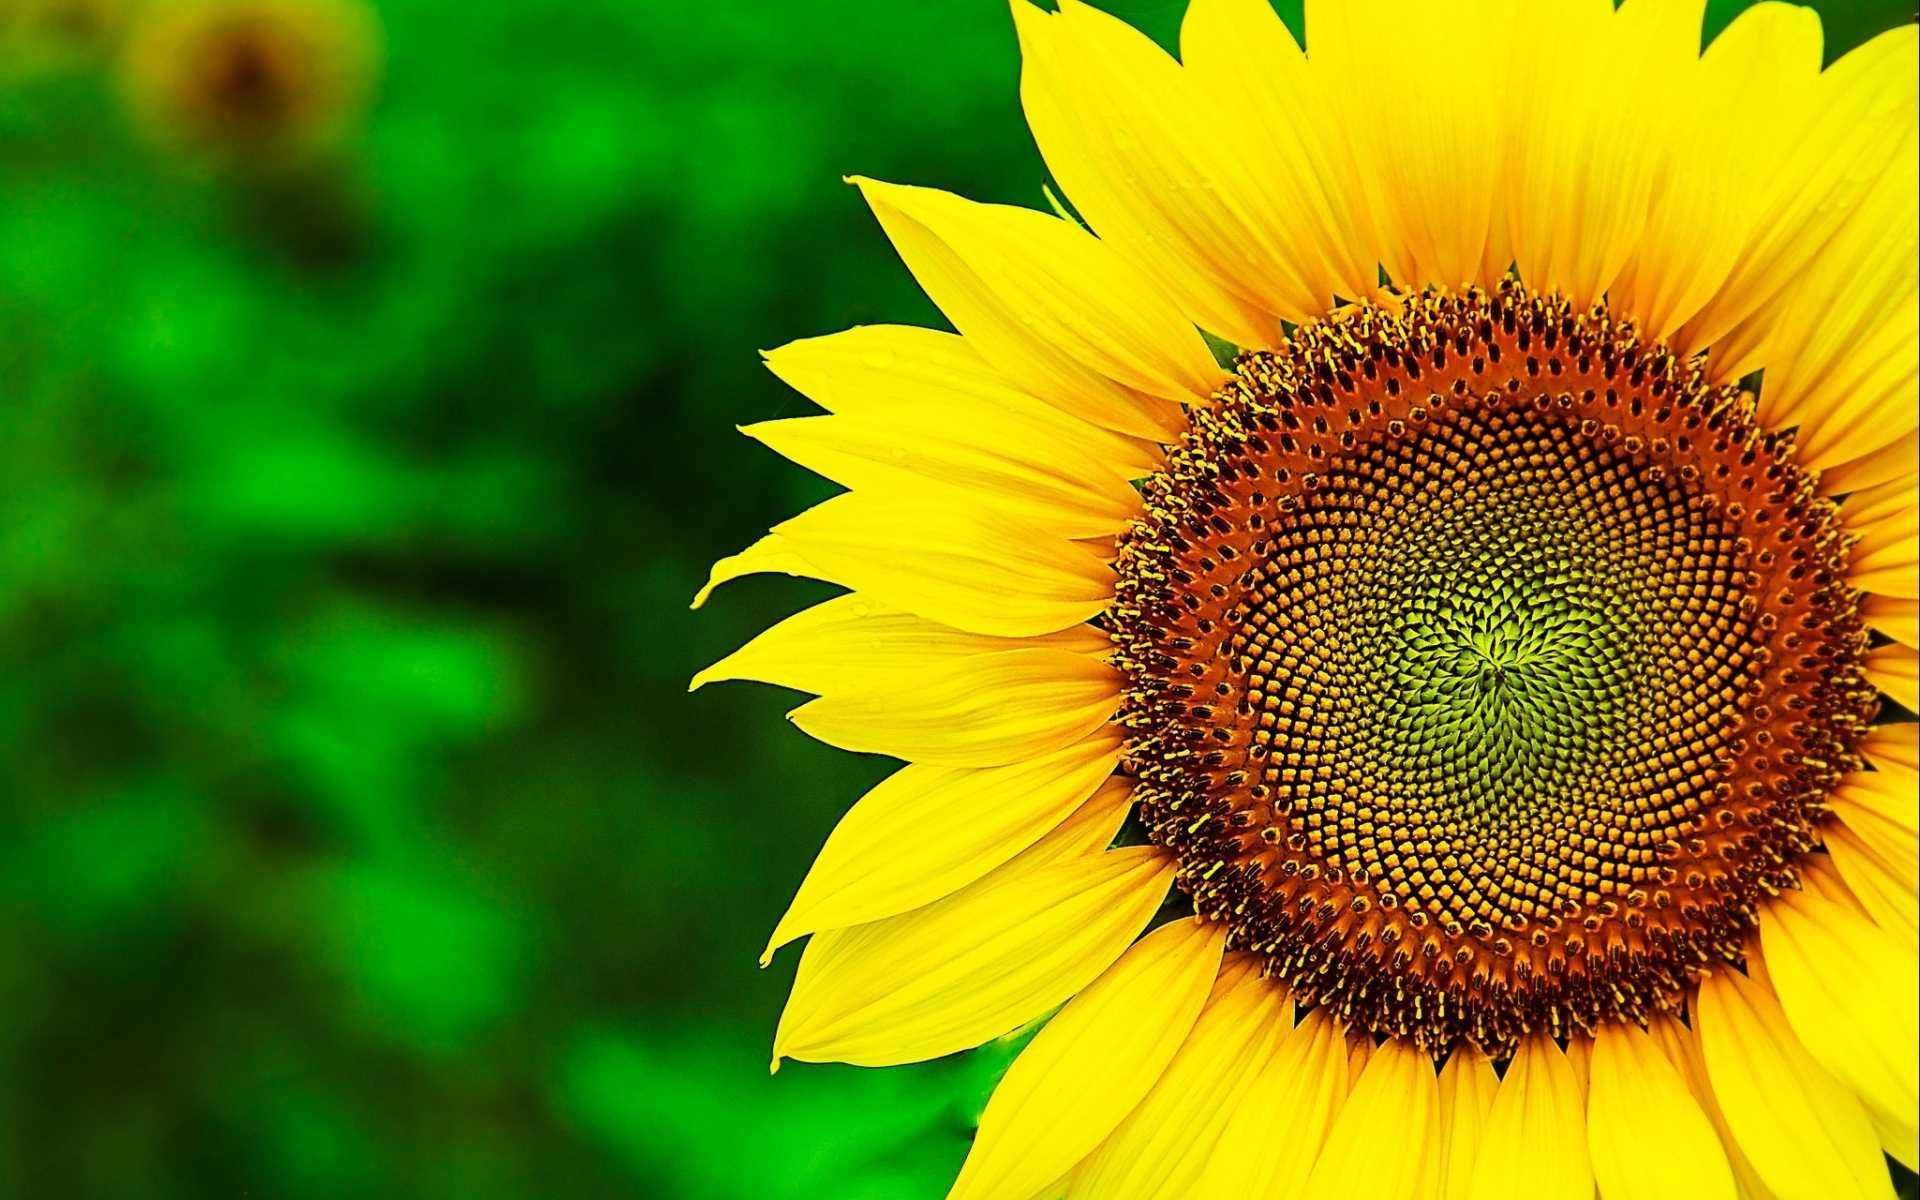 Sunflowers Wallpaper 61 Images